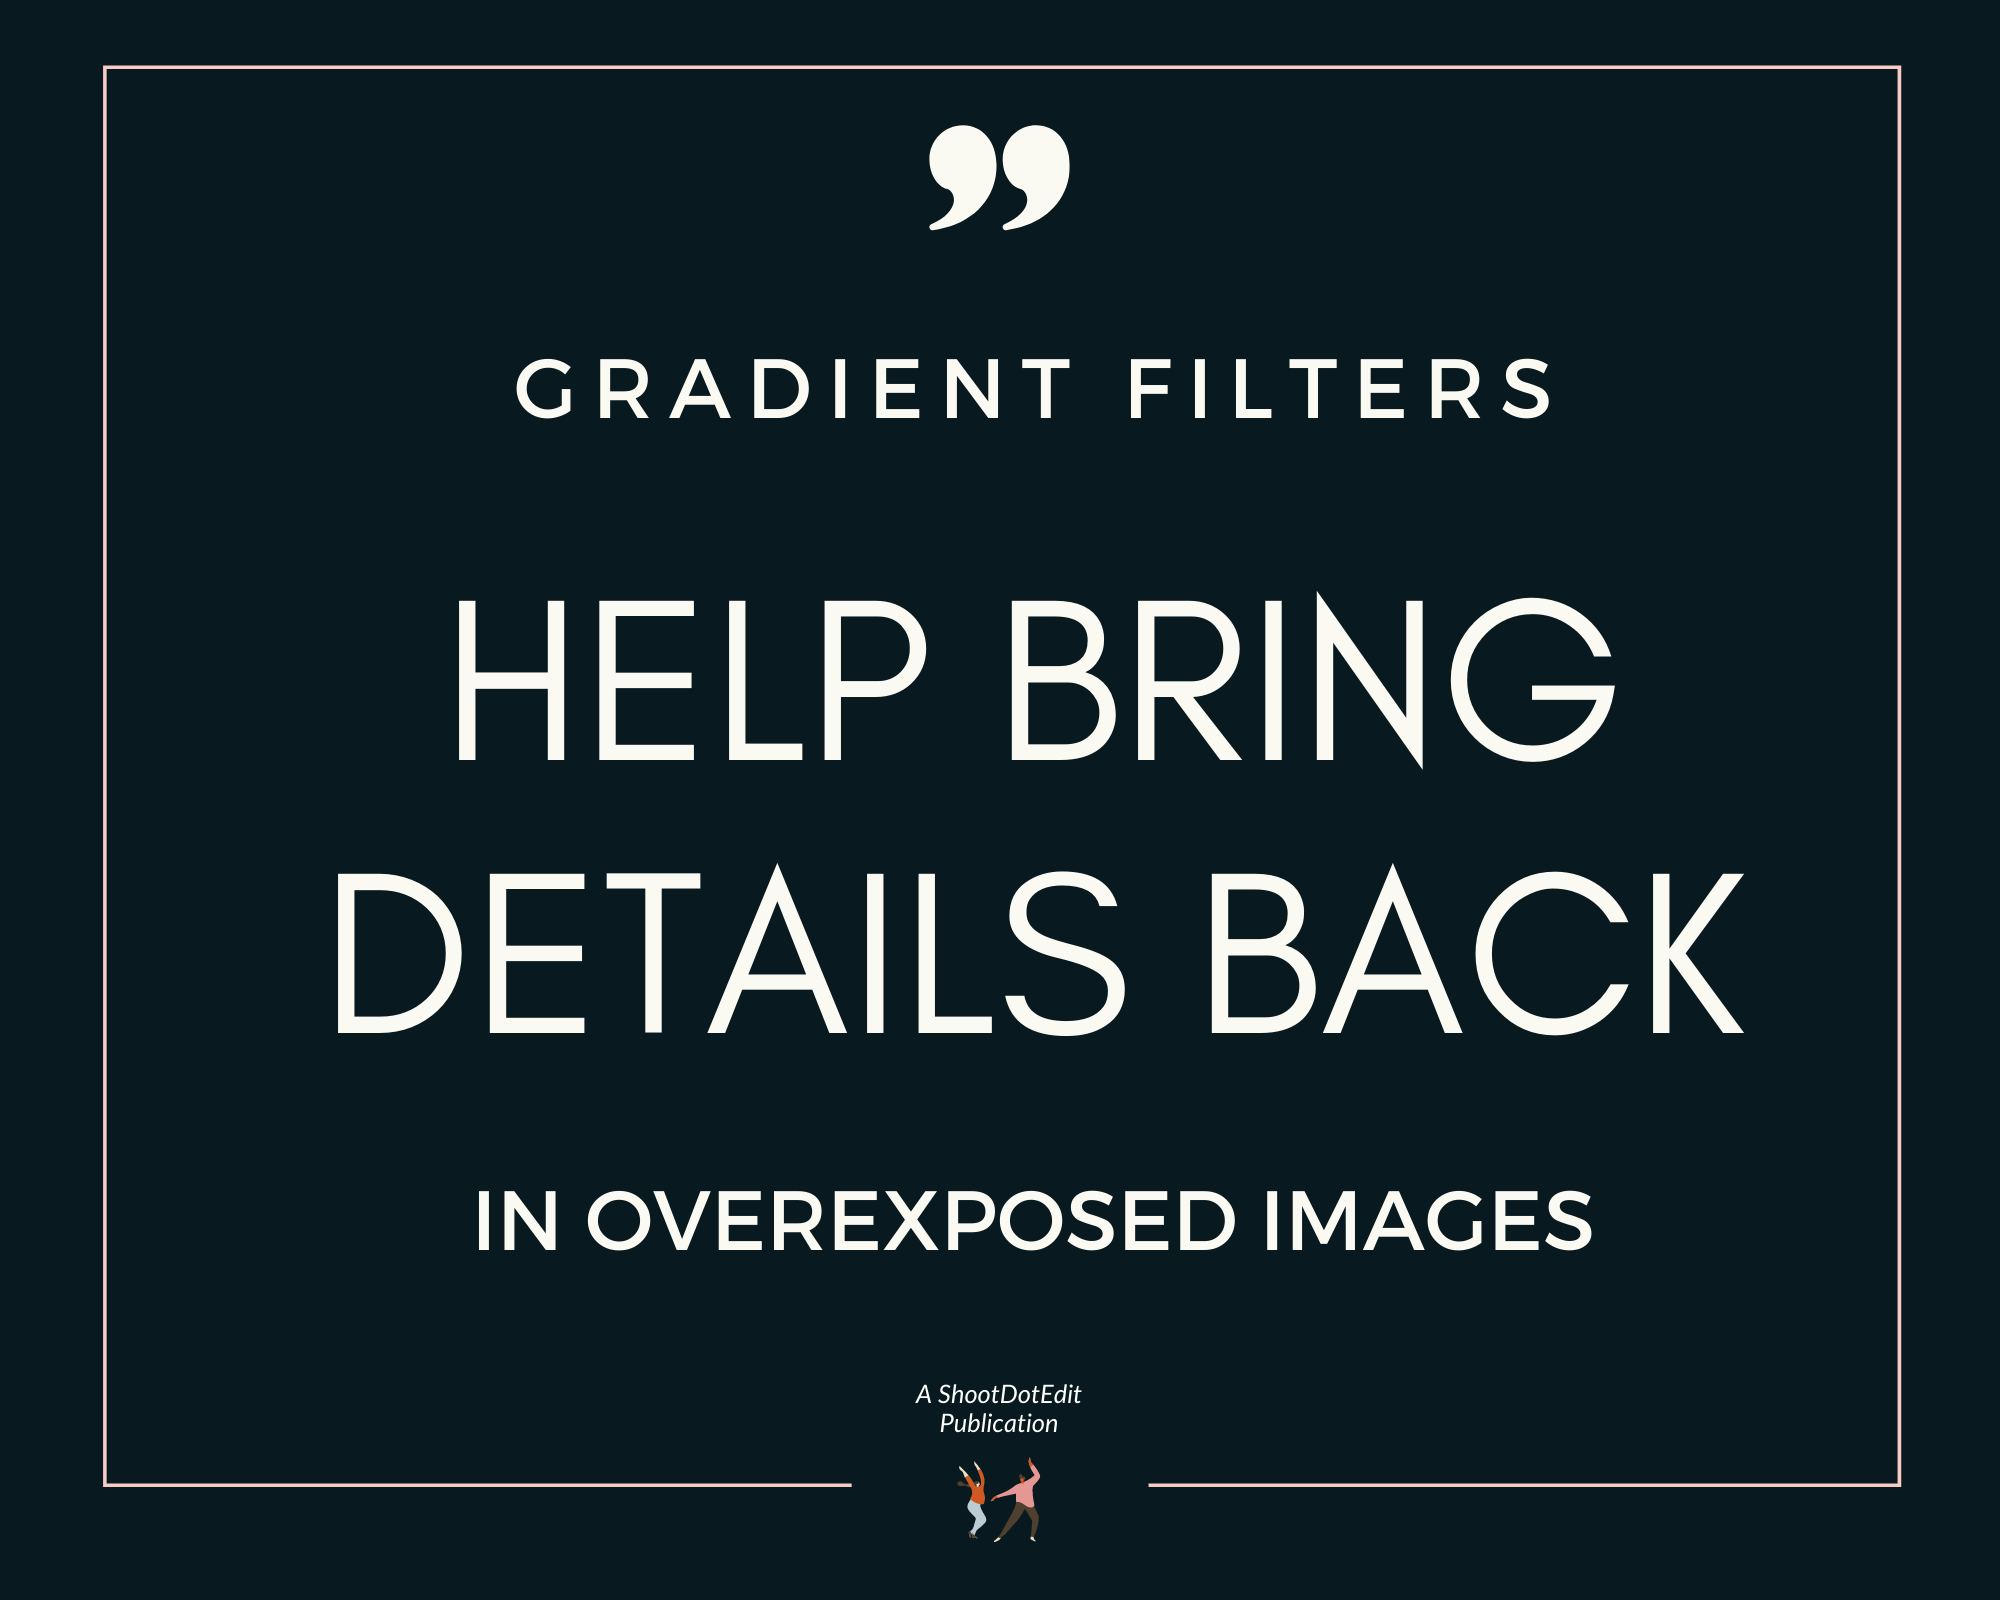 Infographic stating gradient filters help bring details back in overexposed images